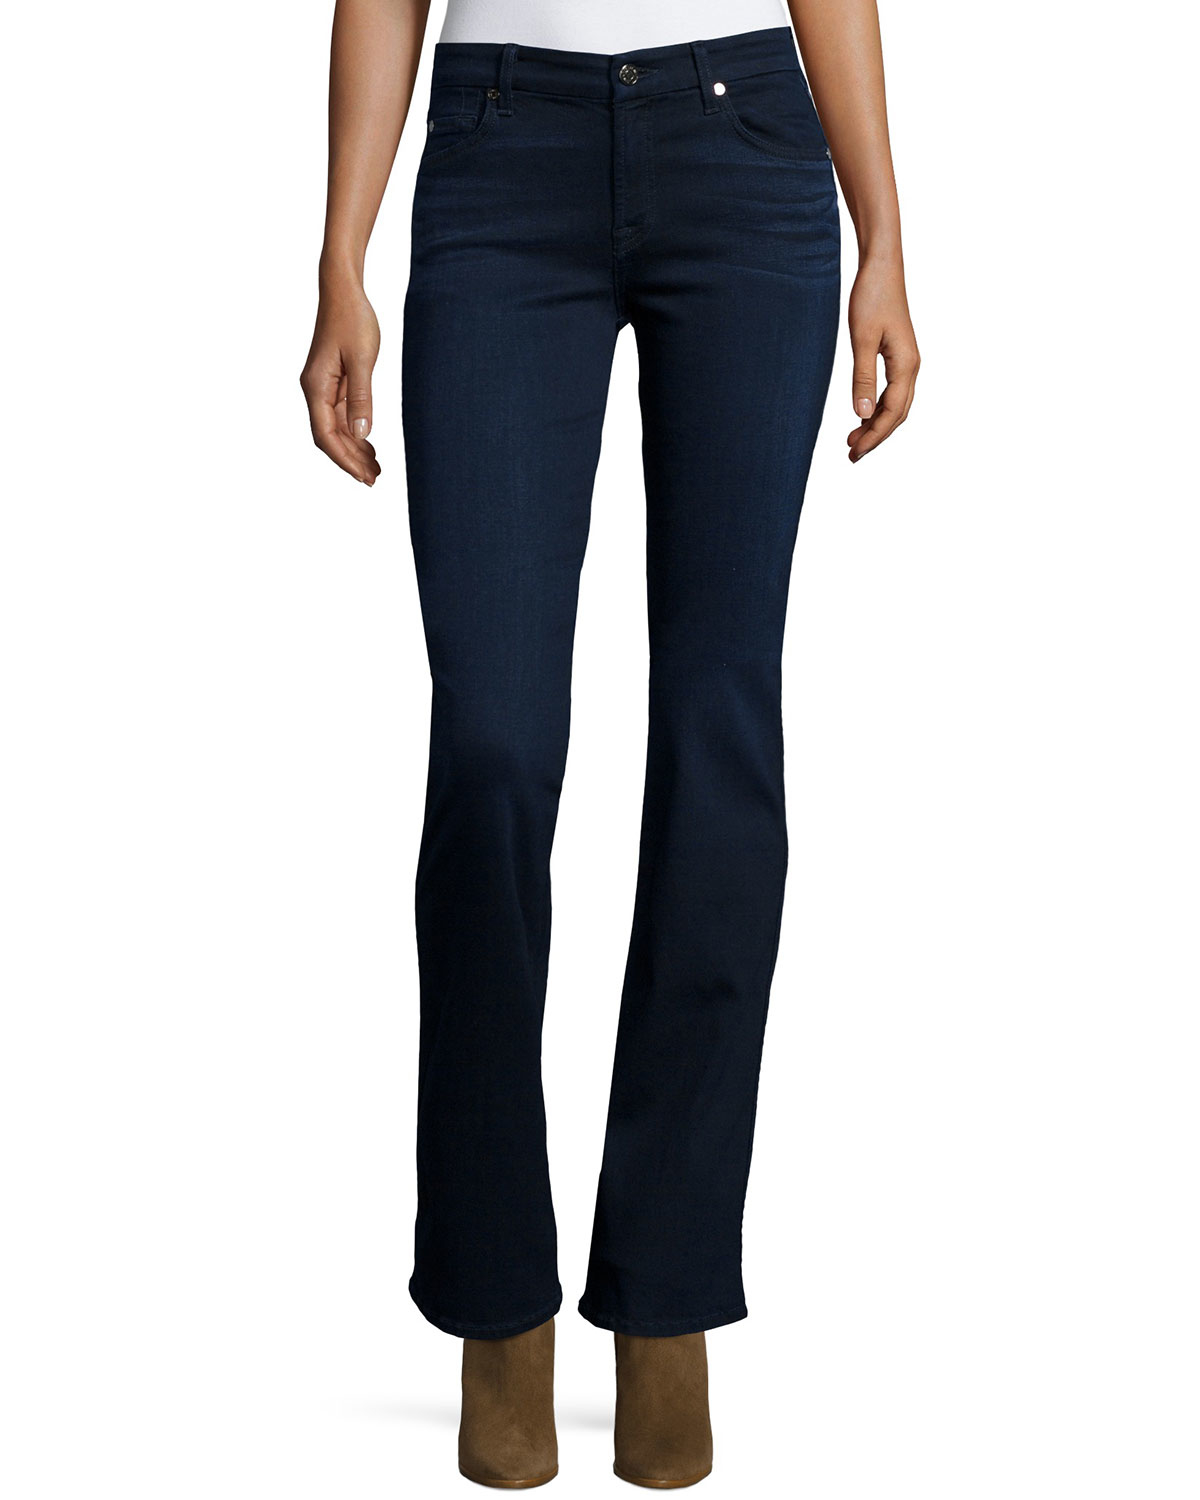 7 for all mankind kimmie boot cut jeans in blue slim illusion lux lyst. Black Bedroom Furniture Sets. Home Design Ideas